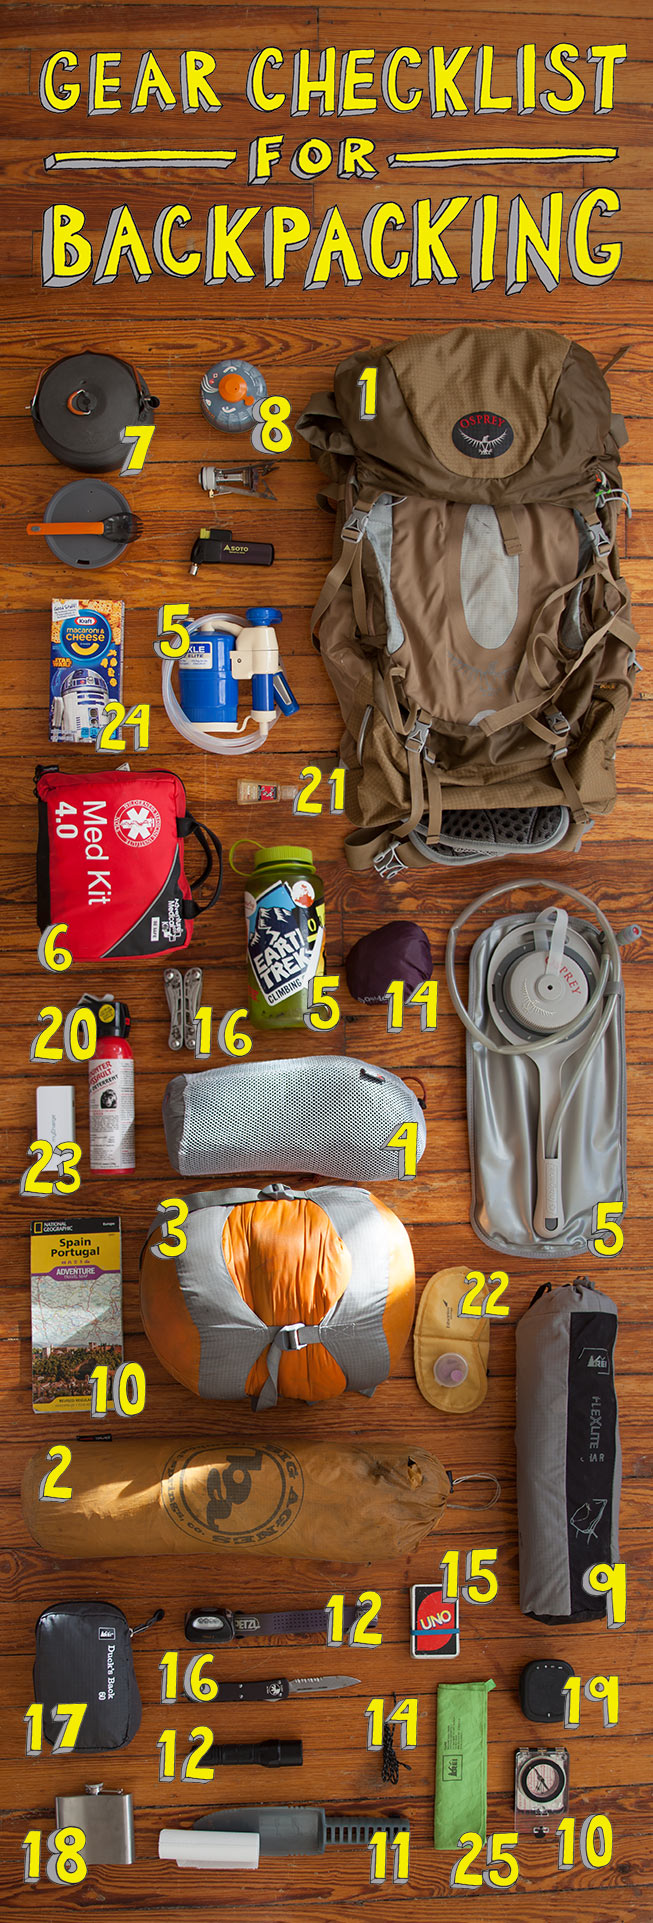 Gear Checklist for Backpacking